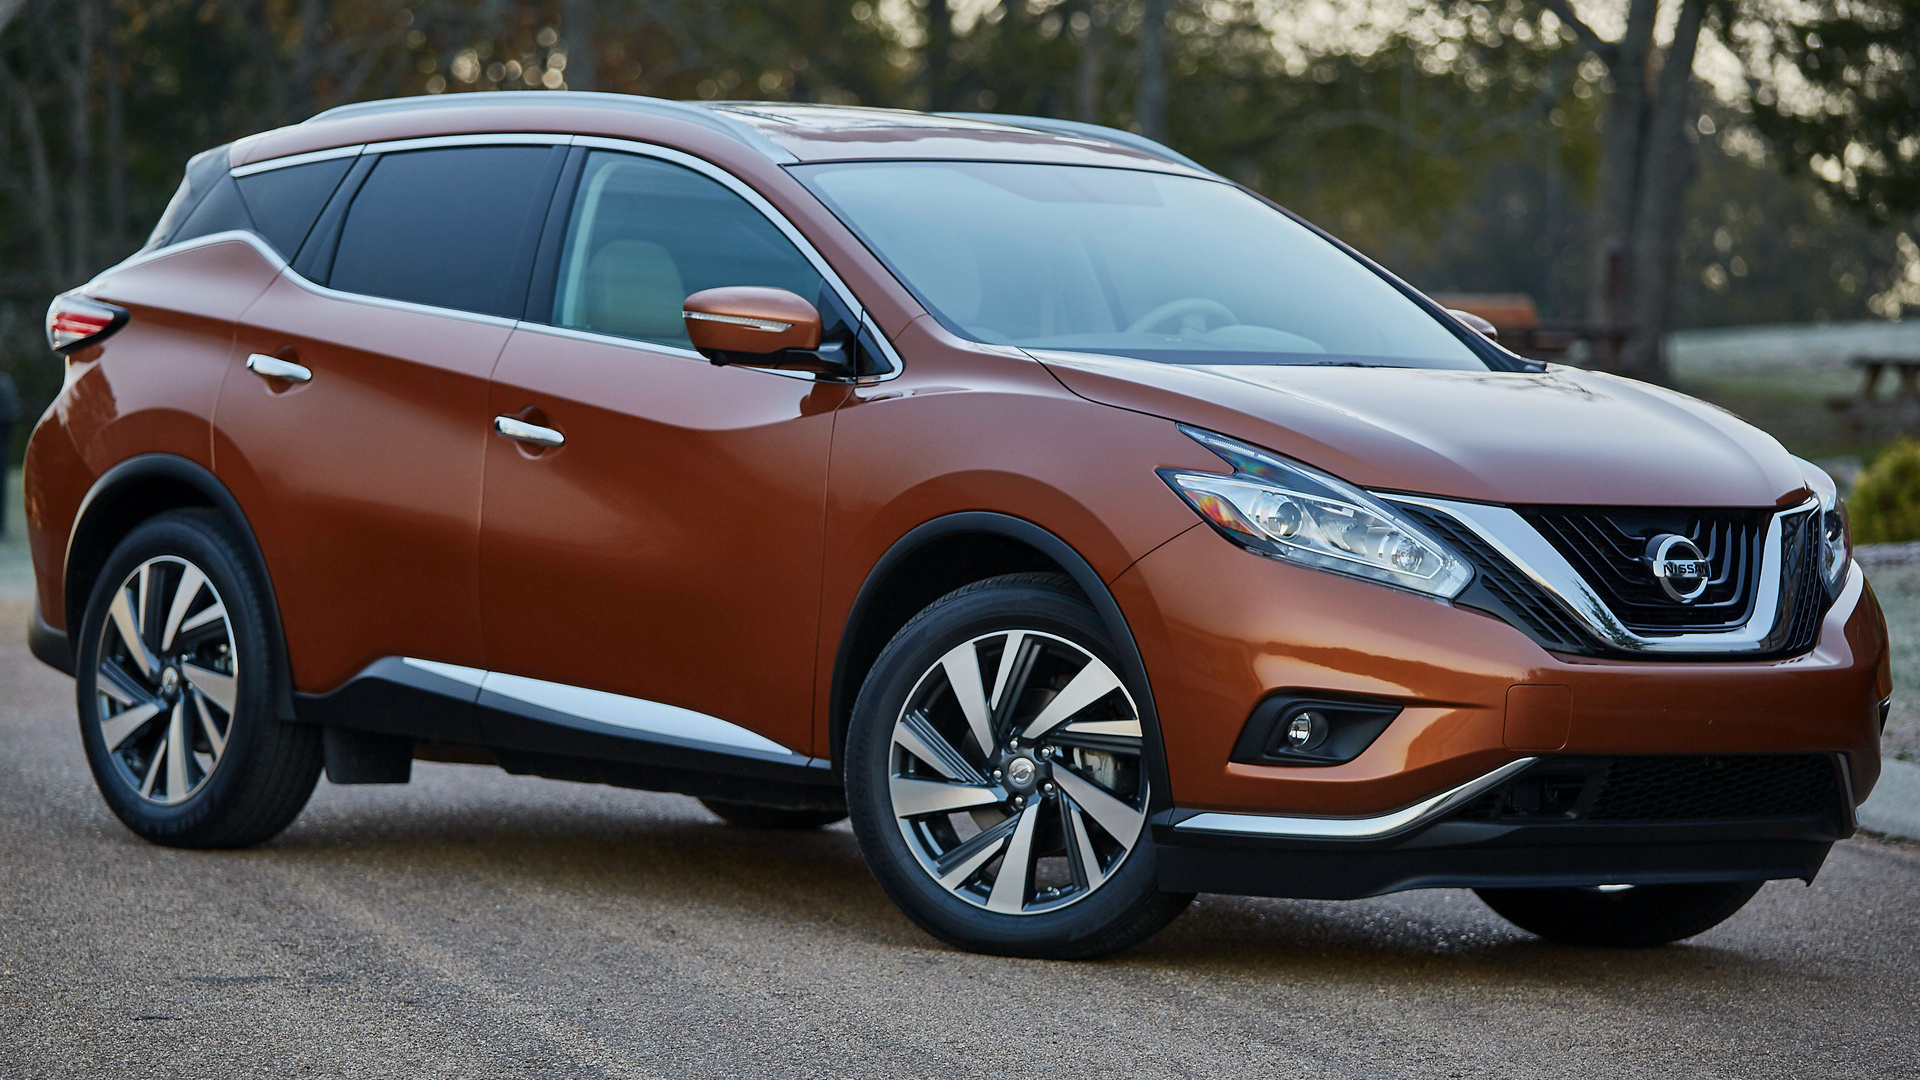 2015 Nissan Murano   Wallpapers and HD Images Car Pixel 1920x1080